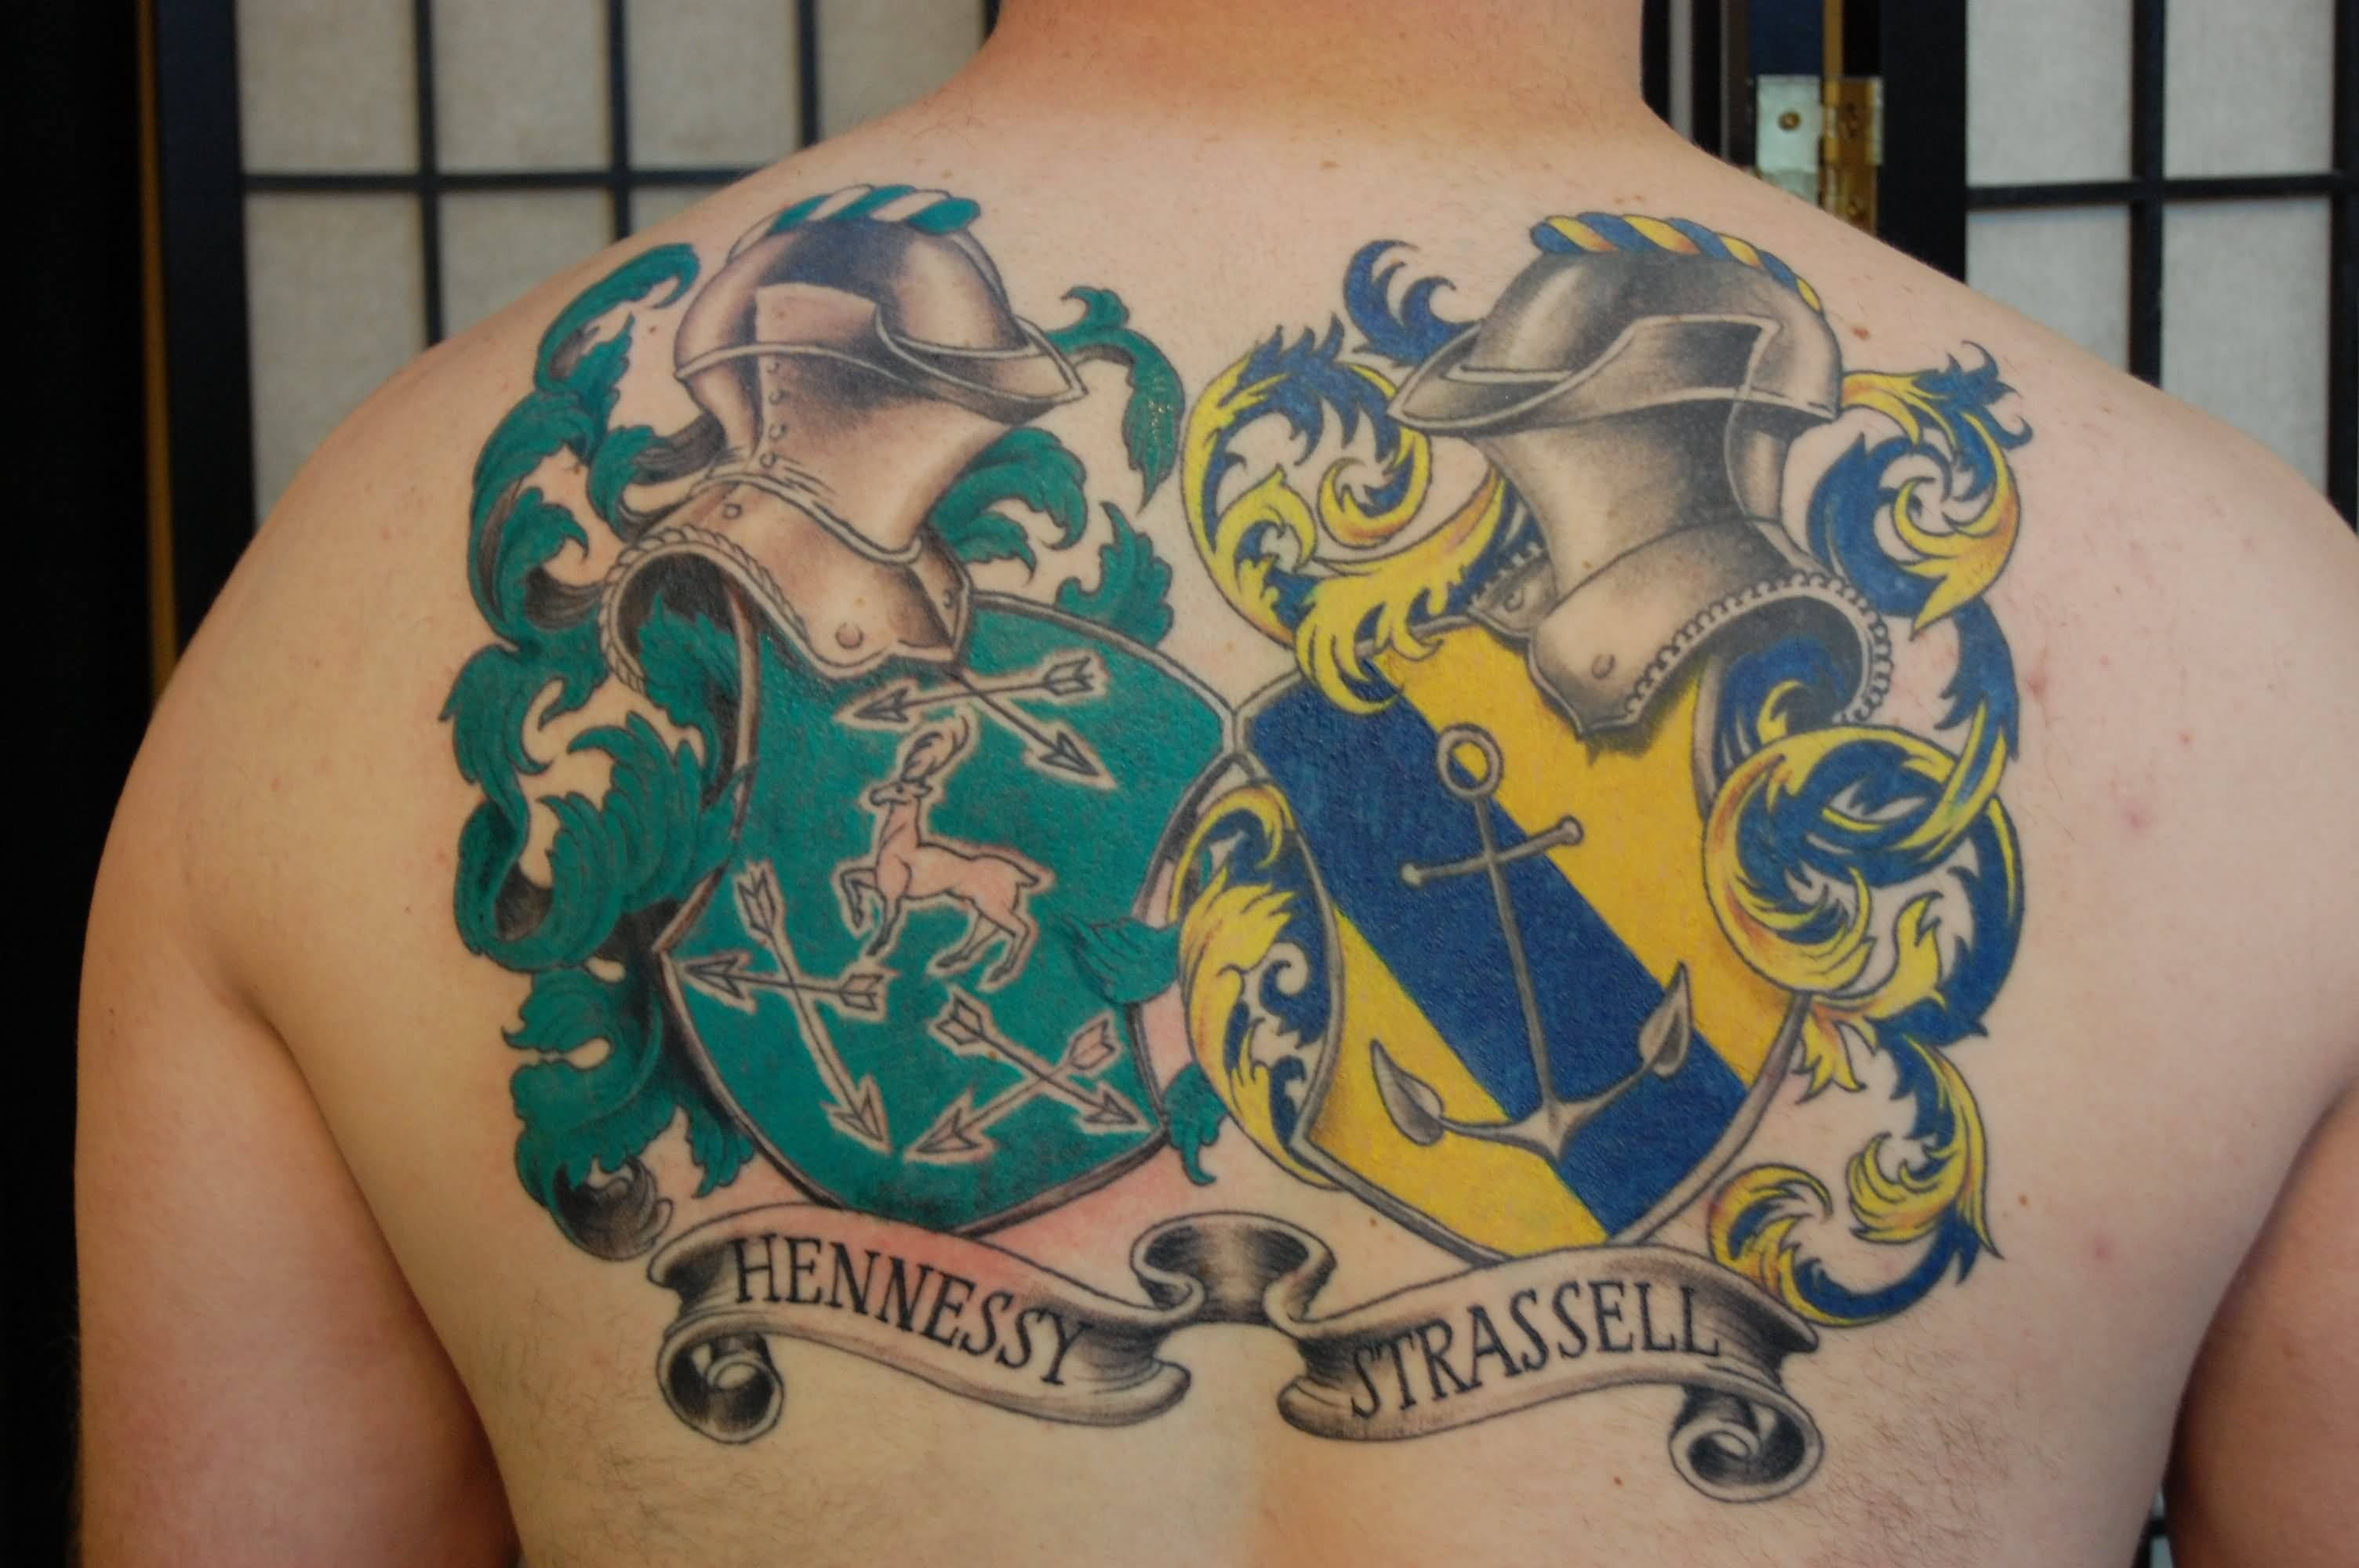 35 family crest tattoos with pride tattoos win swipe leftright to see more buycottarizona Images